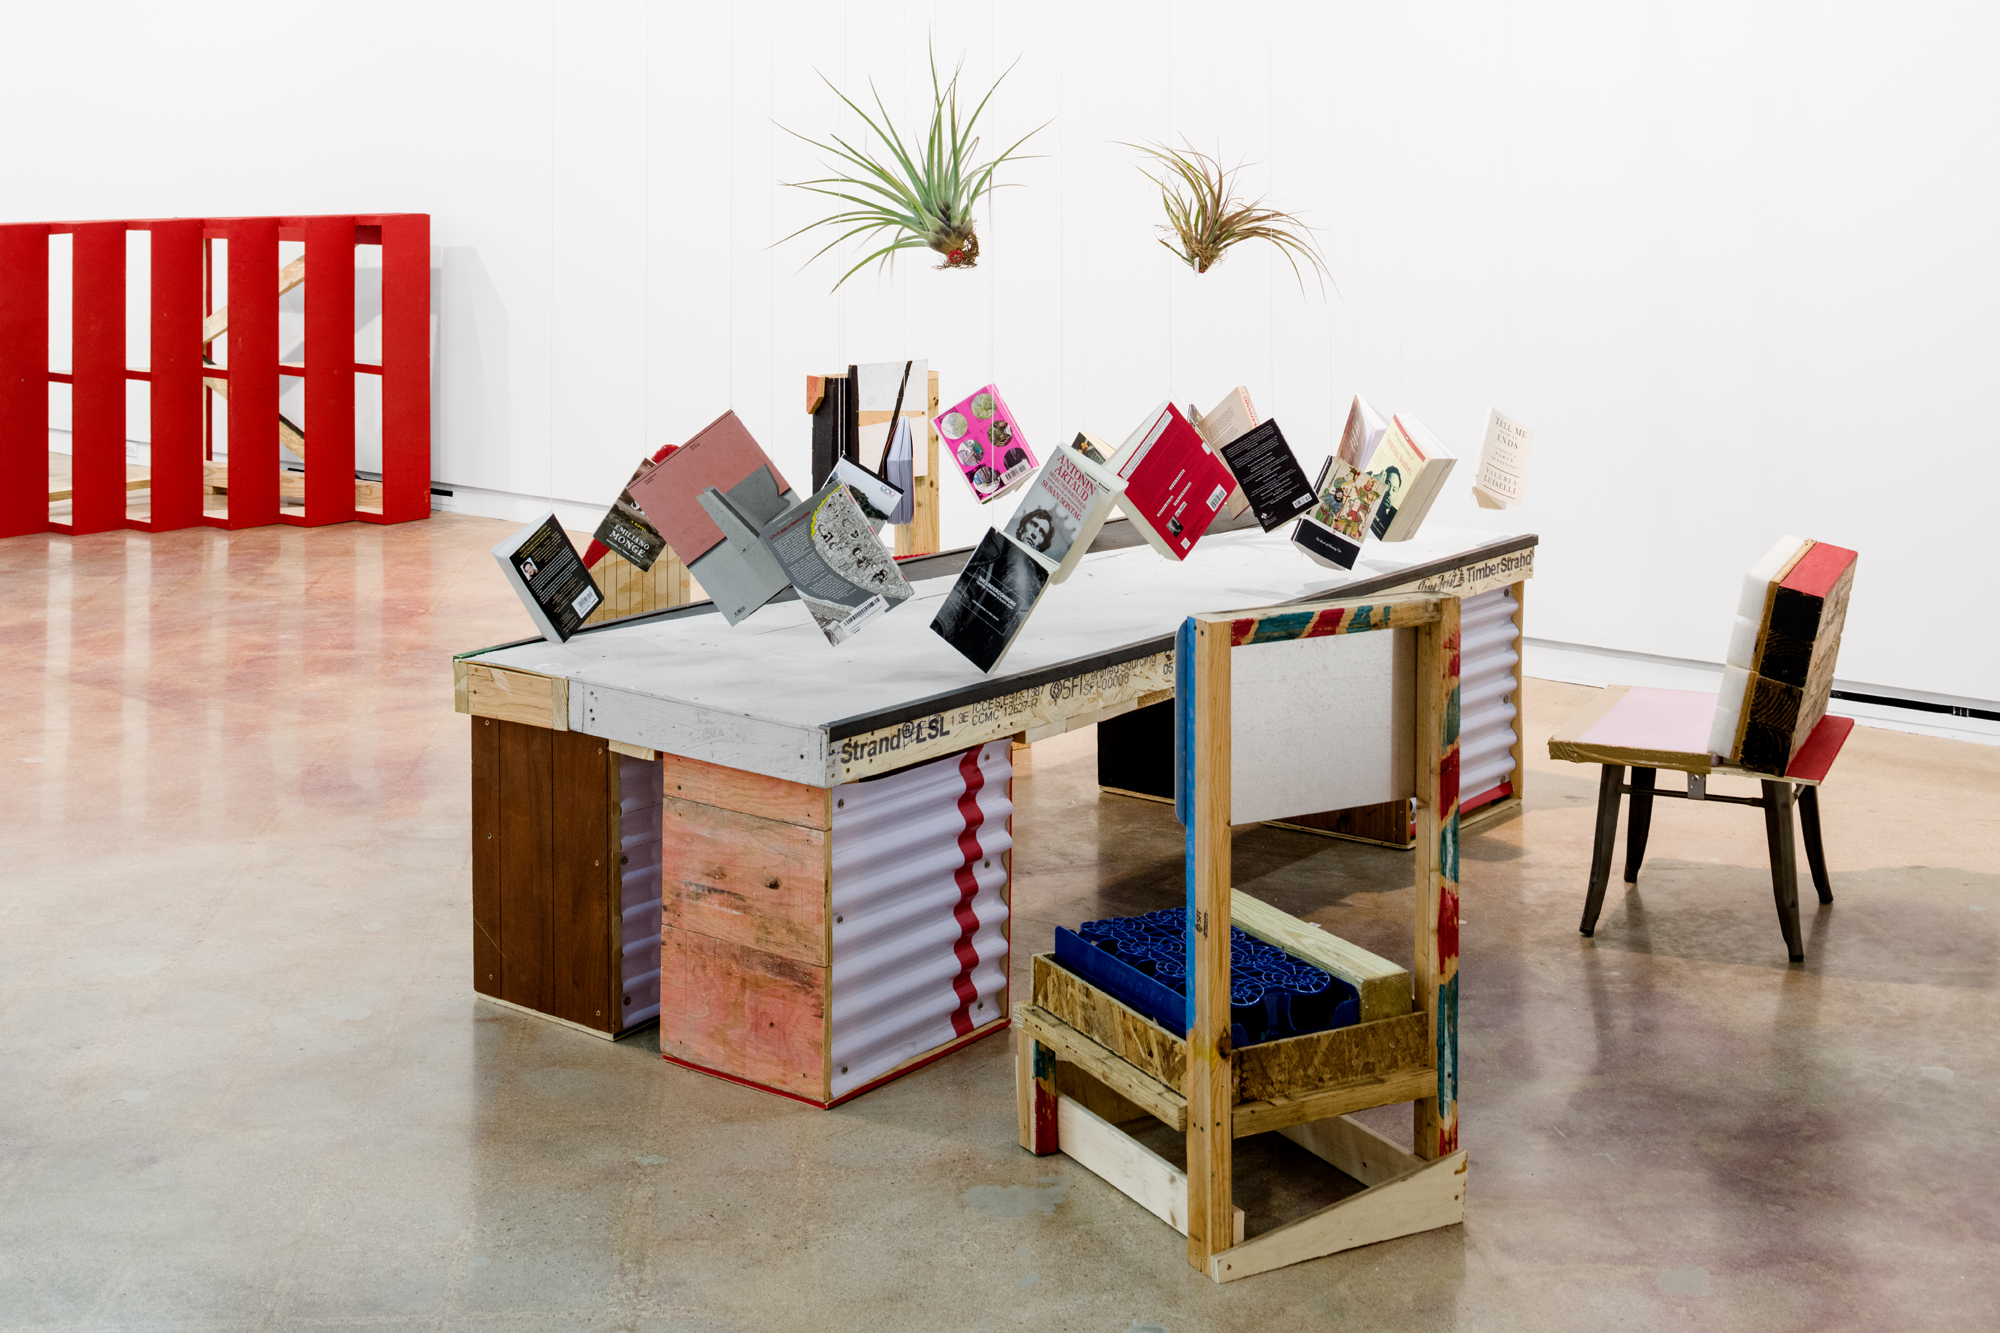 Installation view, Abraham Cruzvillegas: Hi, how are you, Gonzo?